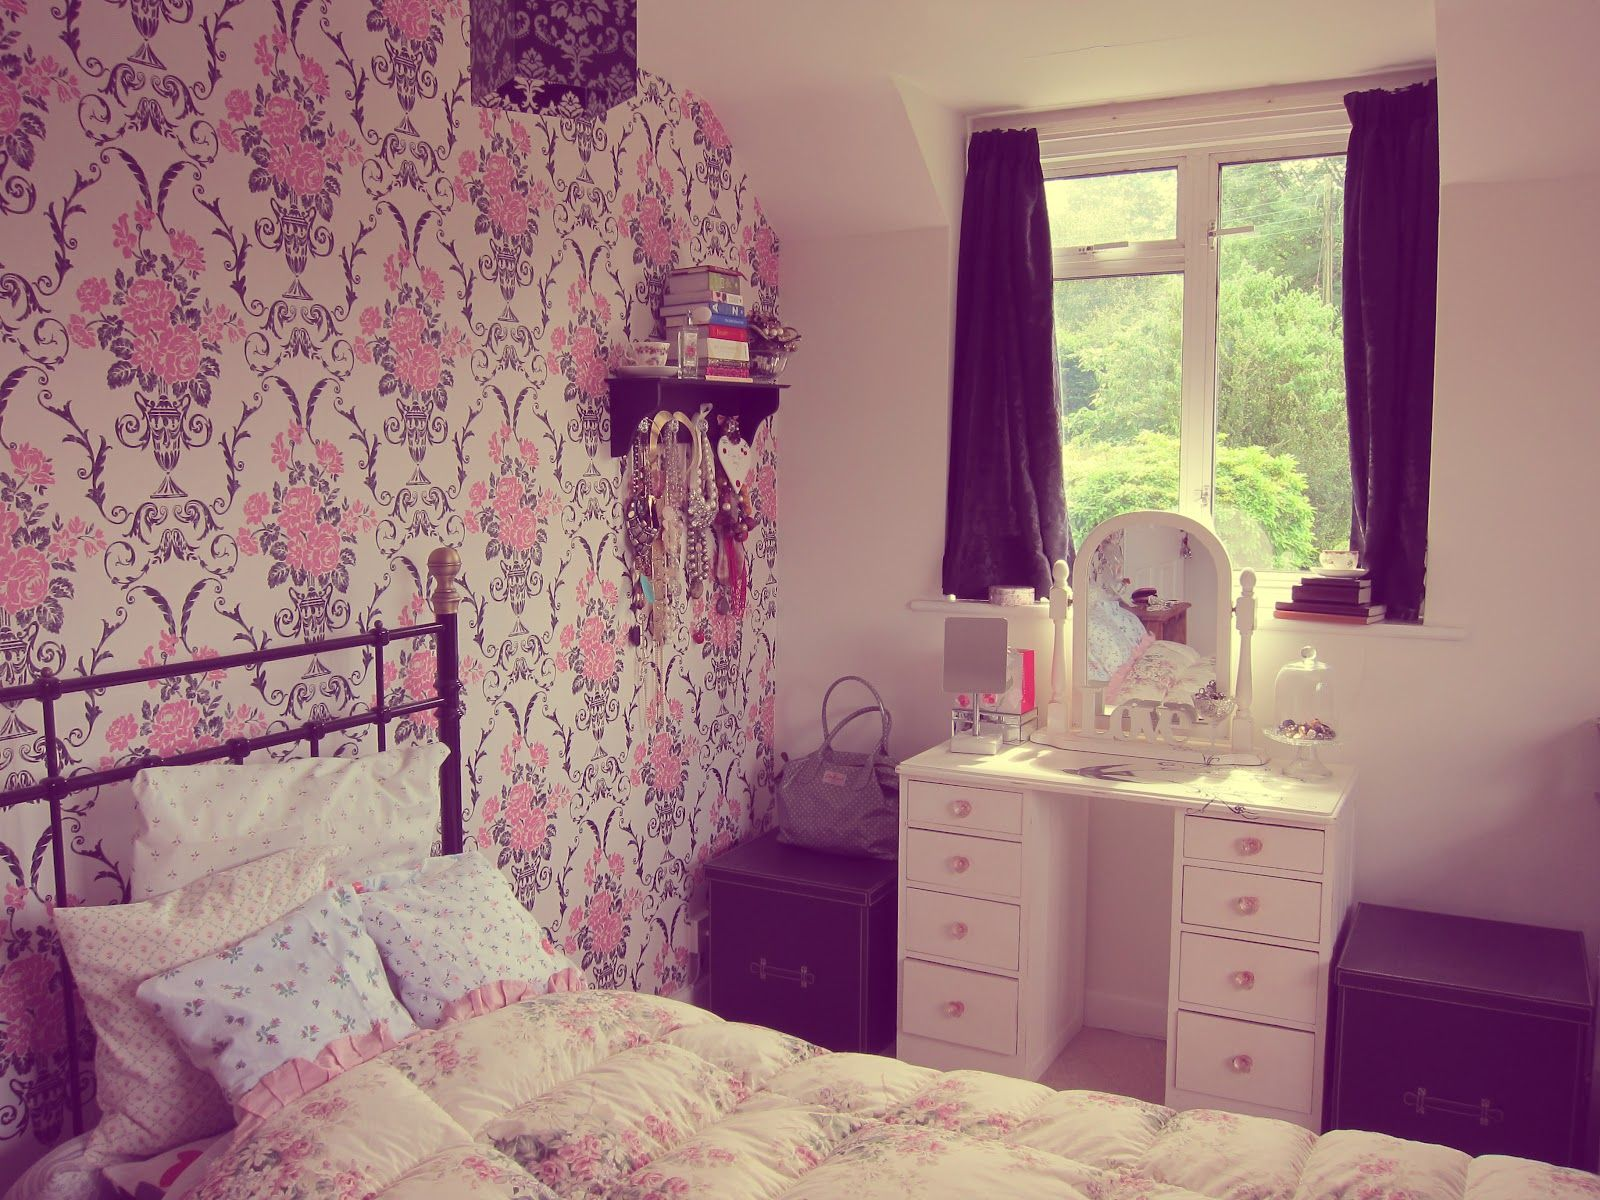 Vintage bedroom ideas tumblr - Room Decor Image For Modern Vintage Photography Tumblr Desktop Wallpaper